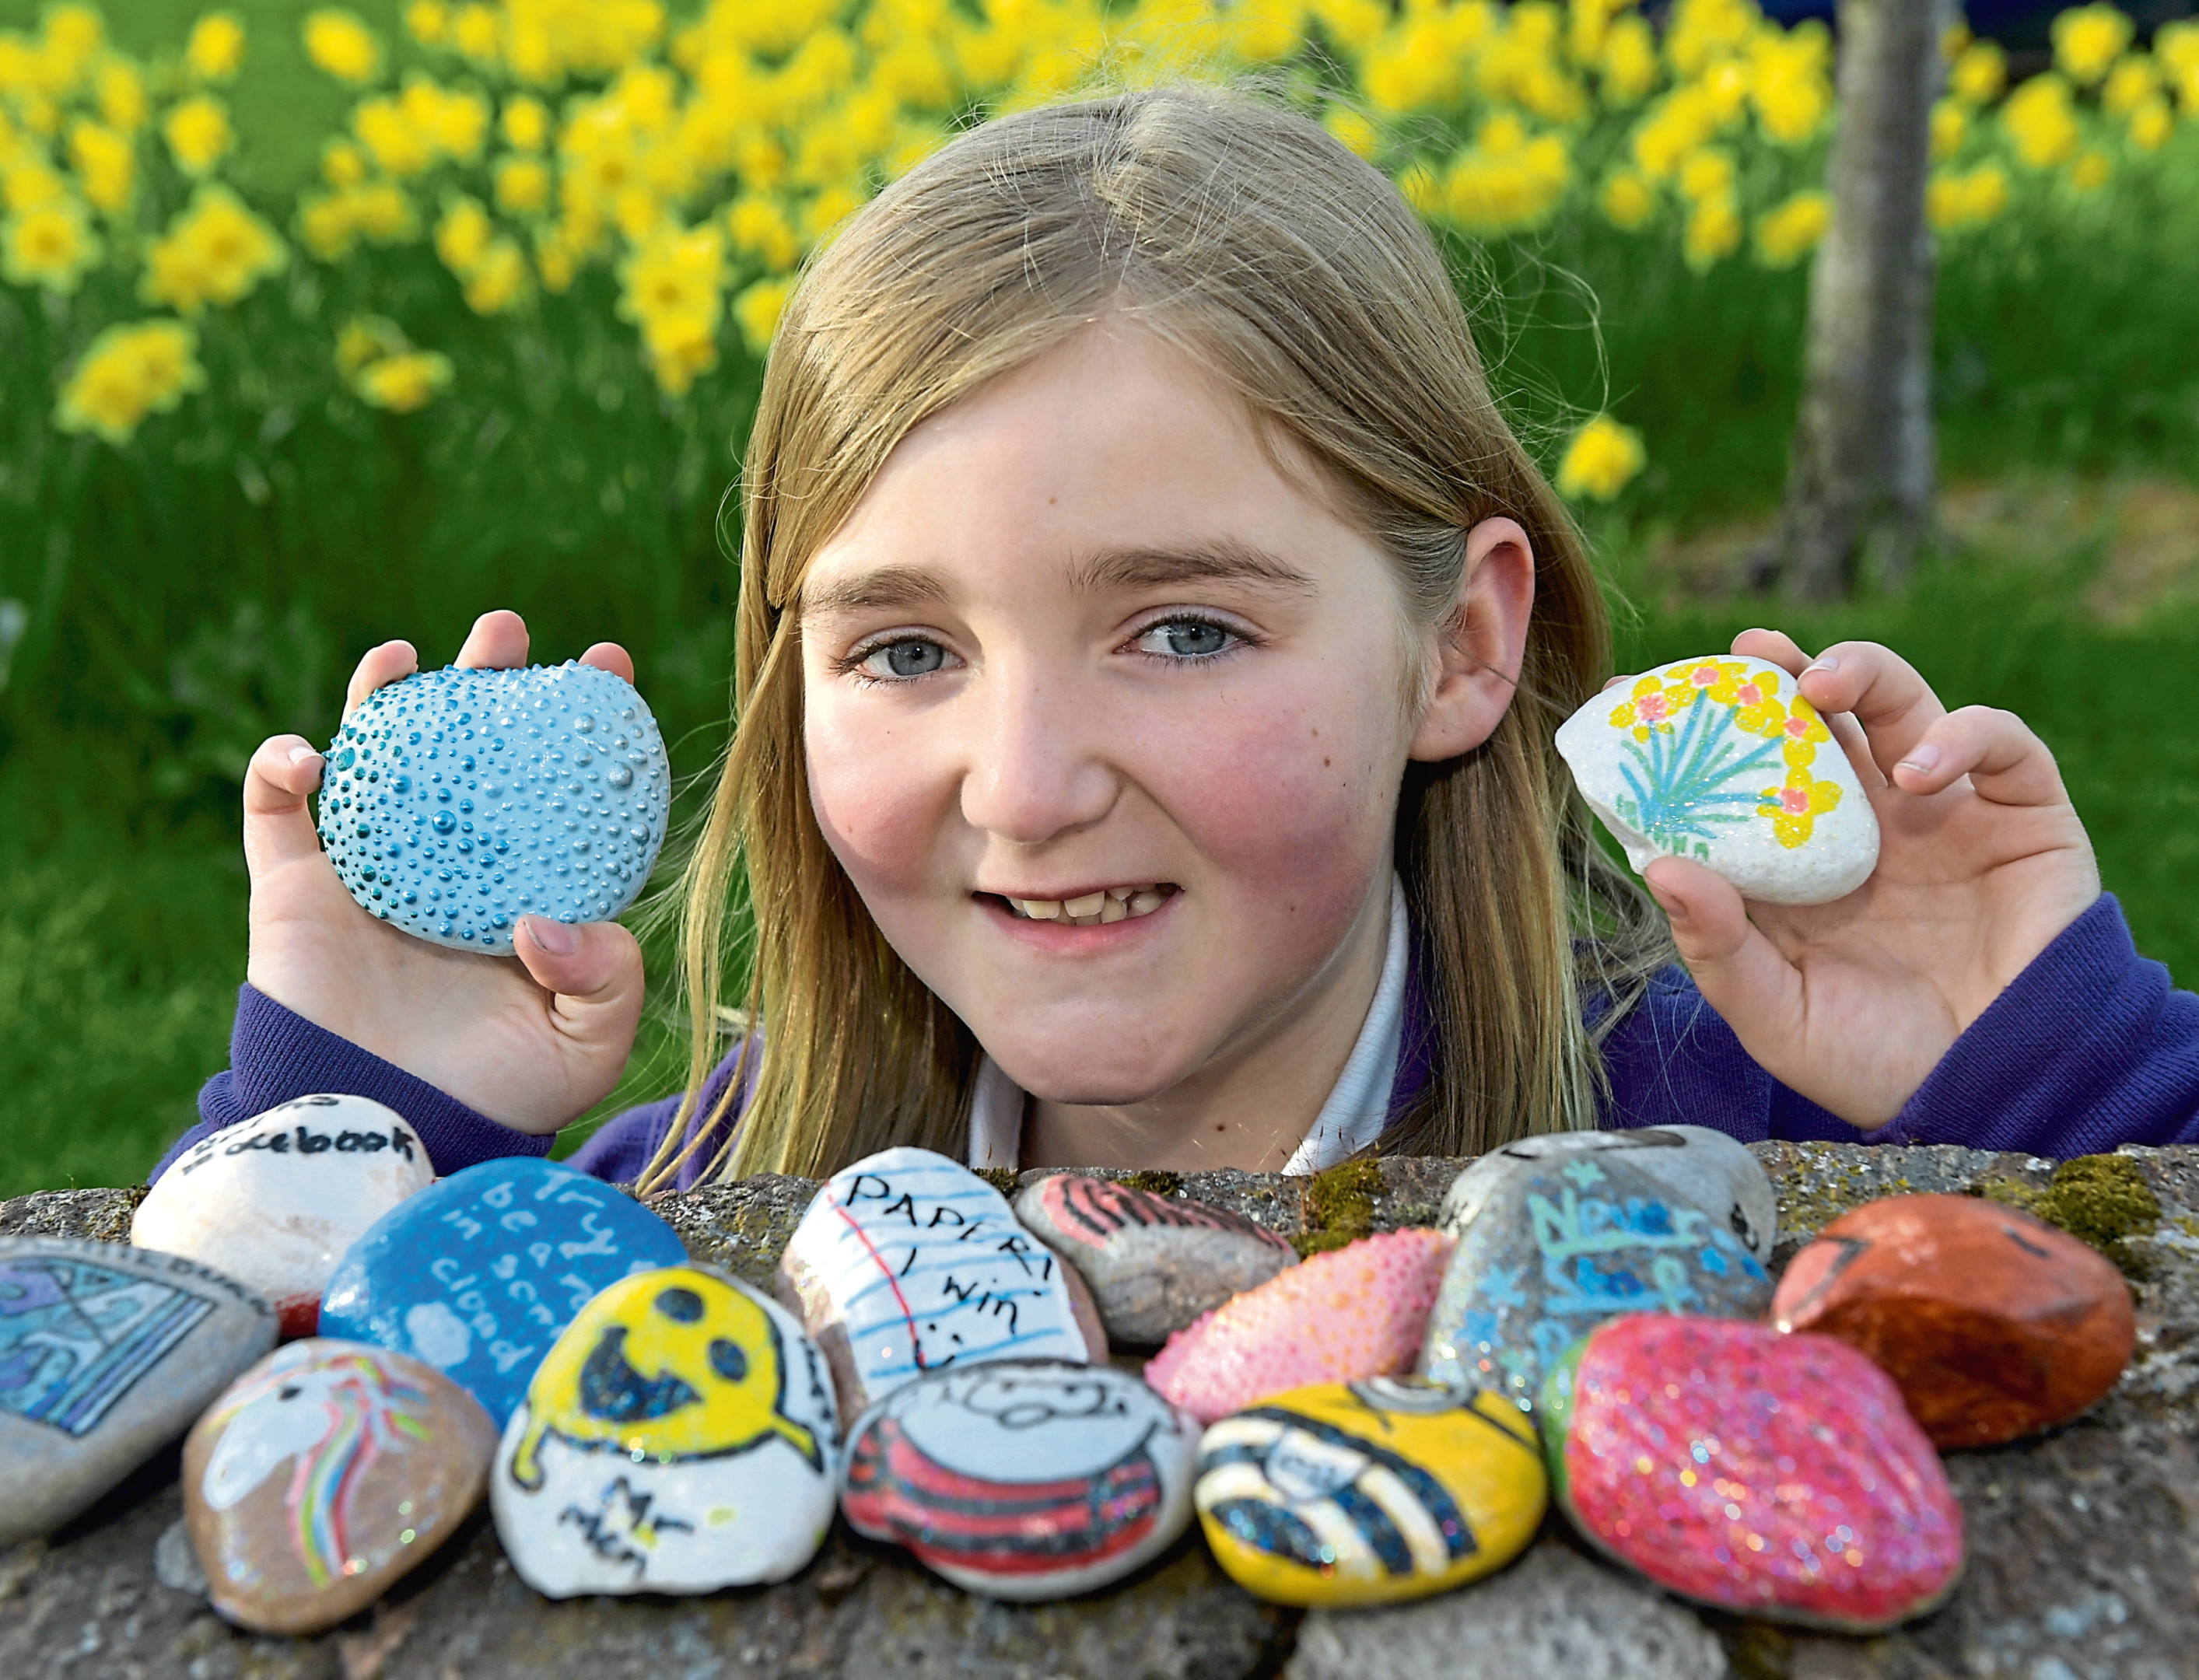 Alana Christie with some of the painted rocks.